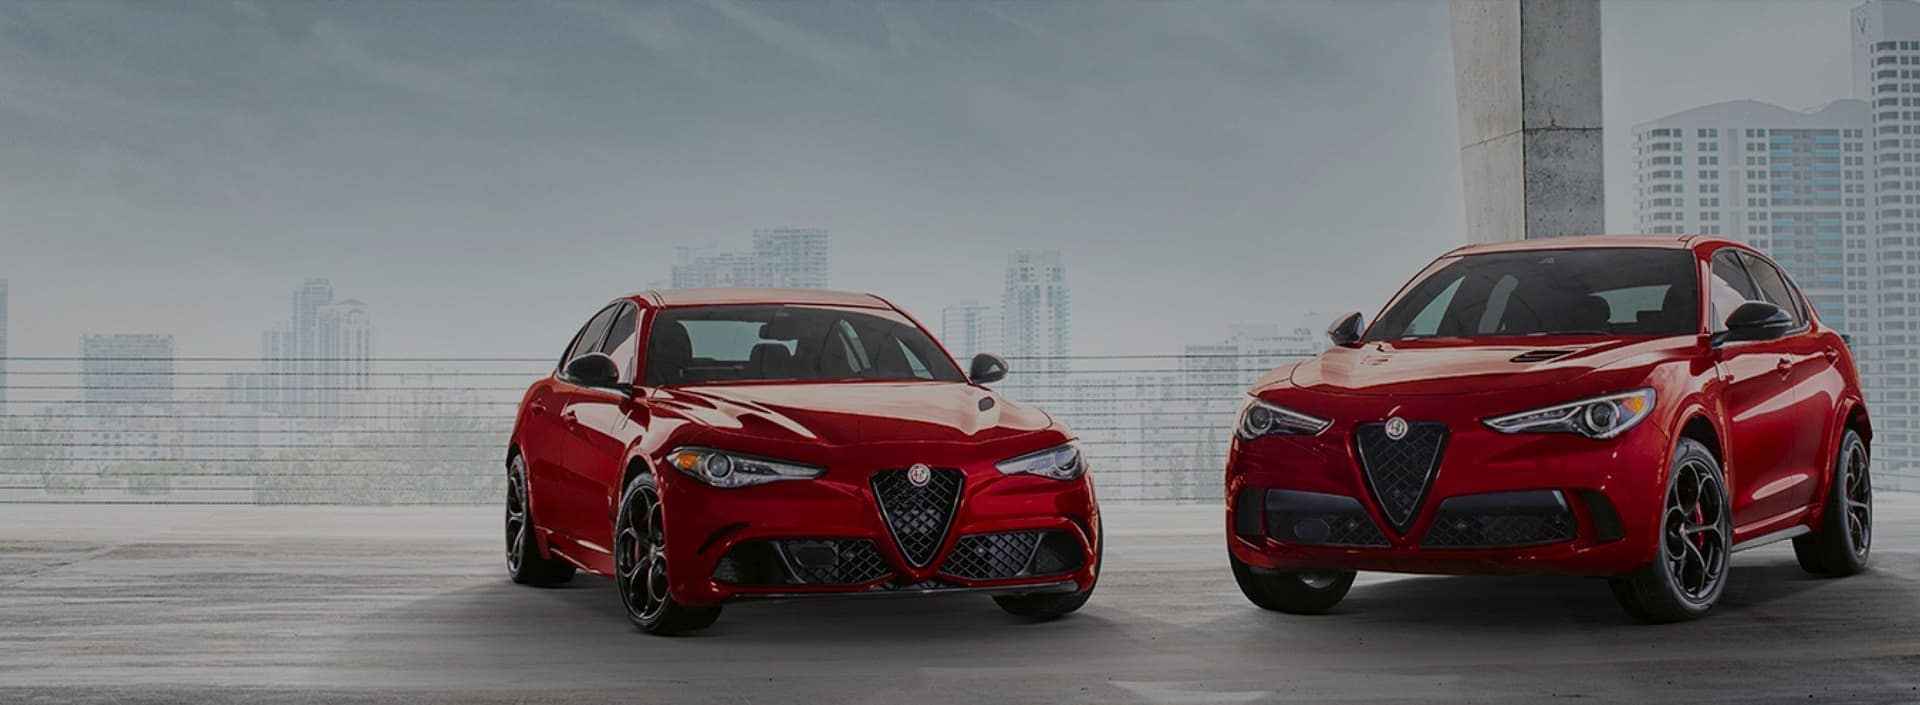 two red Alfa Romeo vehicles parked in front of a cityscape